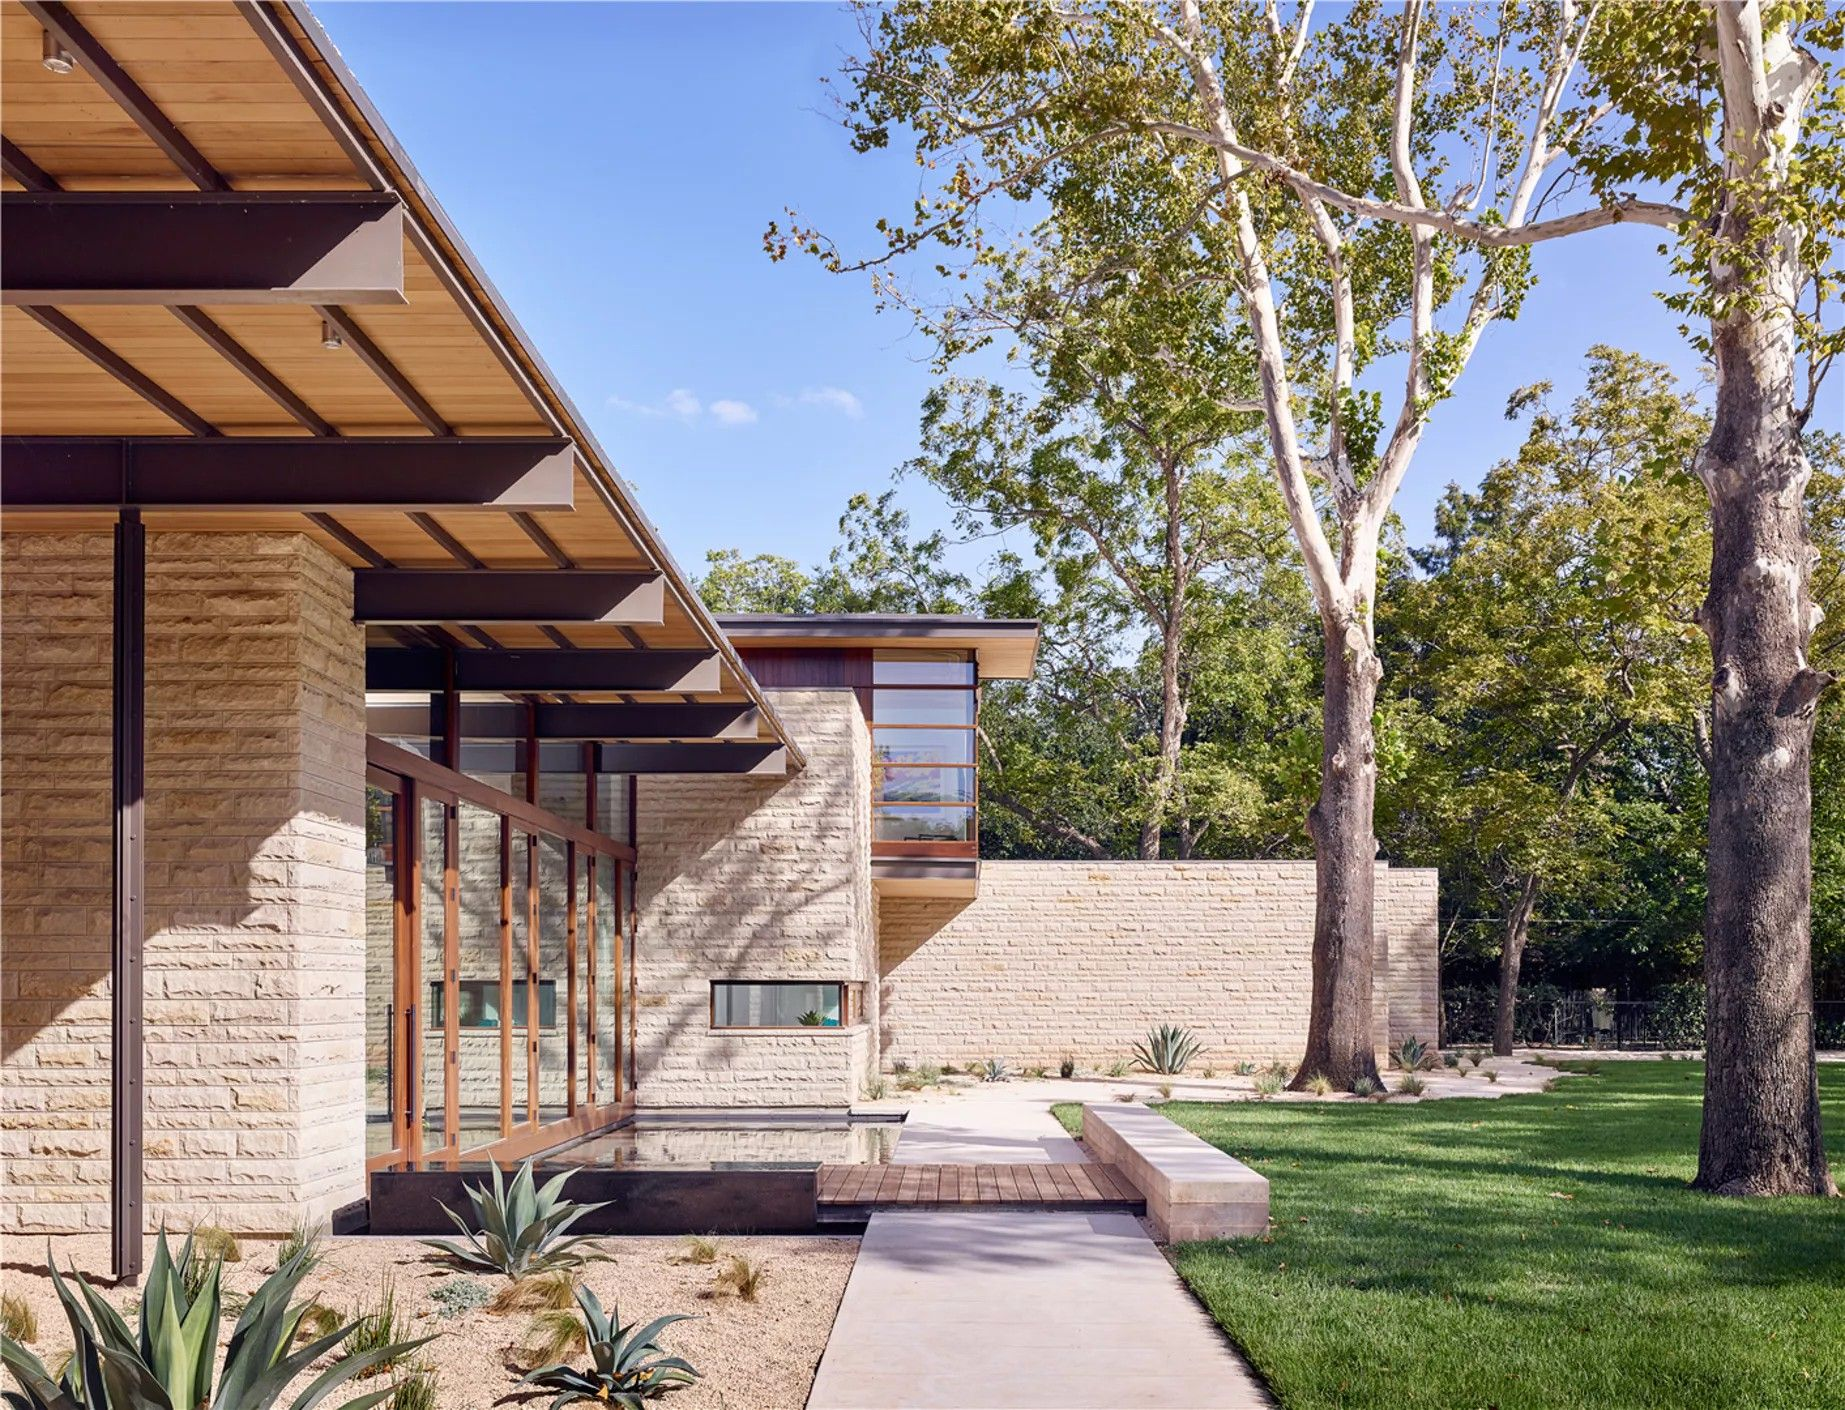 Lake Austin Residence - A Parallel Architecture - Archinect